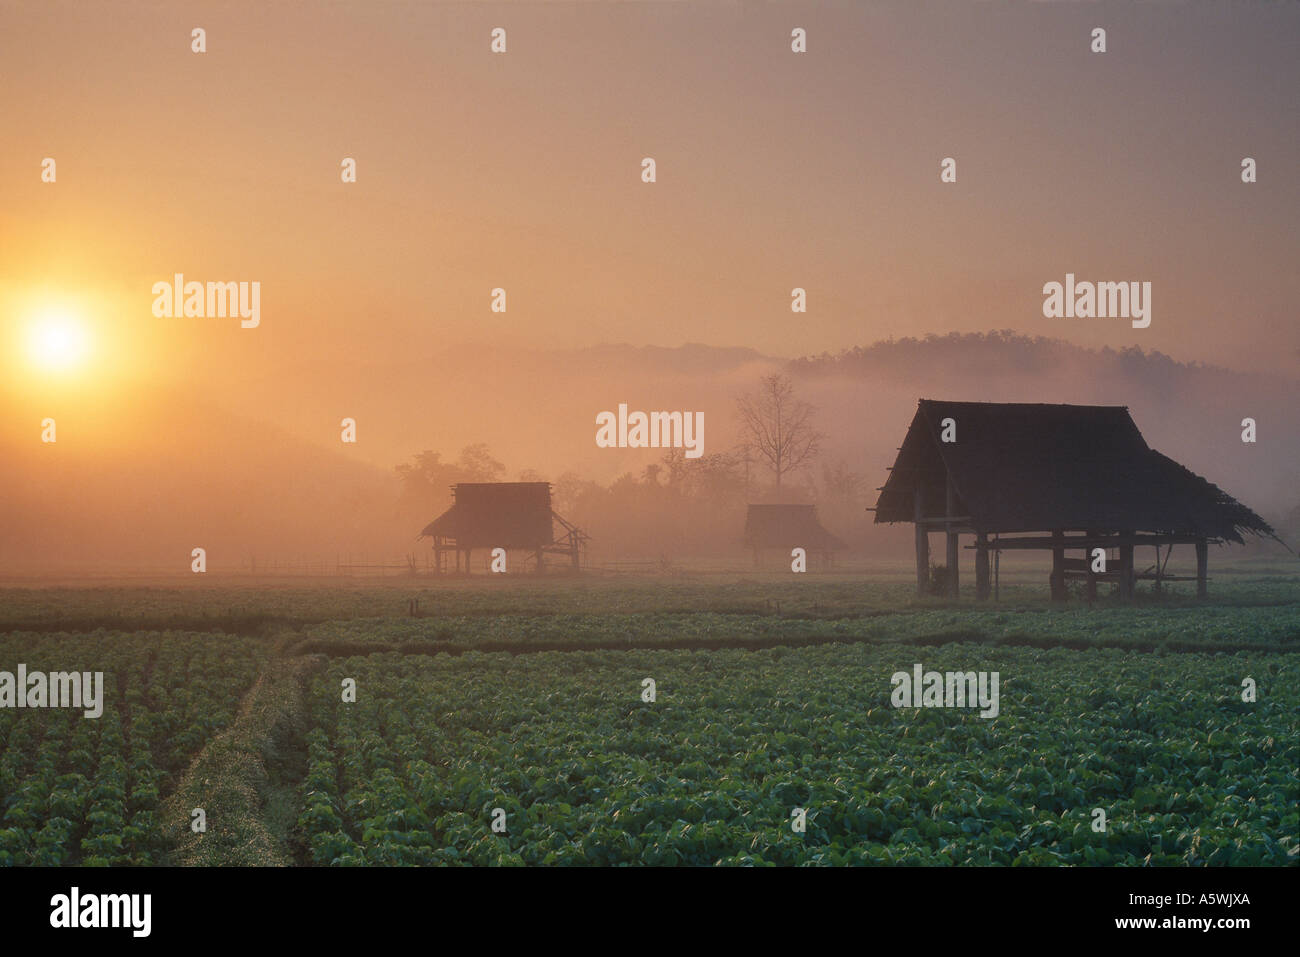 farm building and land in the morning mist nr Mae Hong Son Thailand - Stock Image